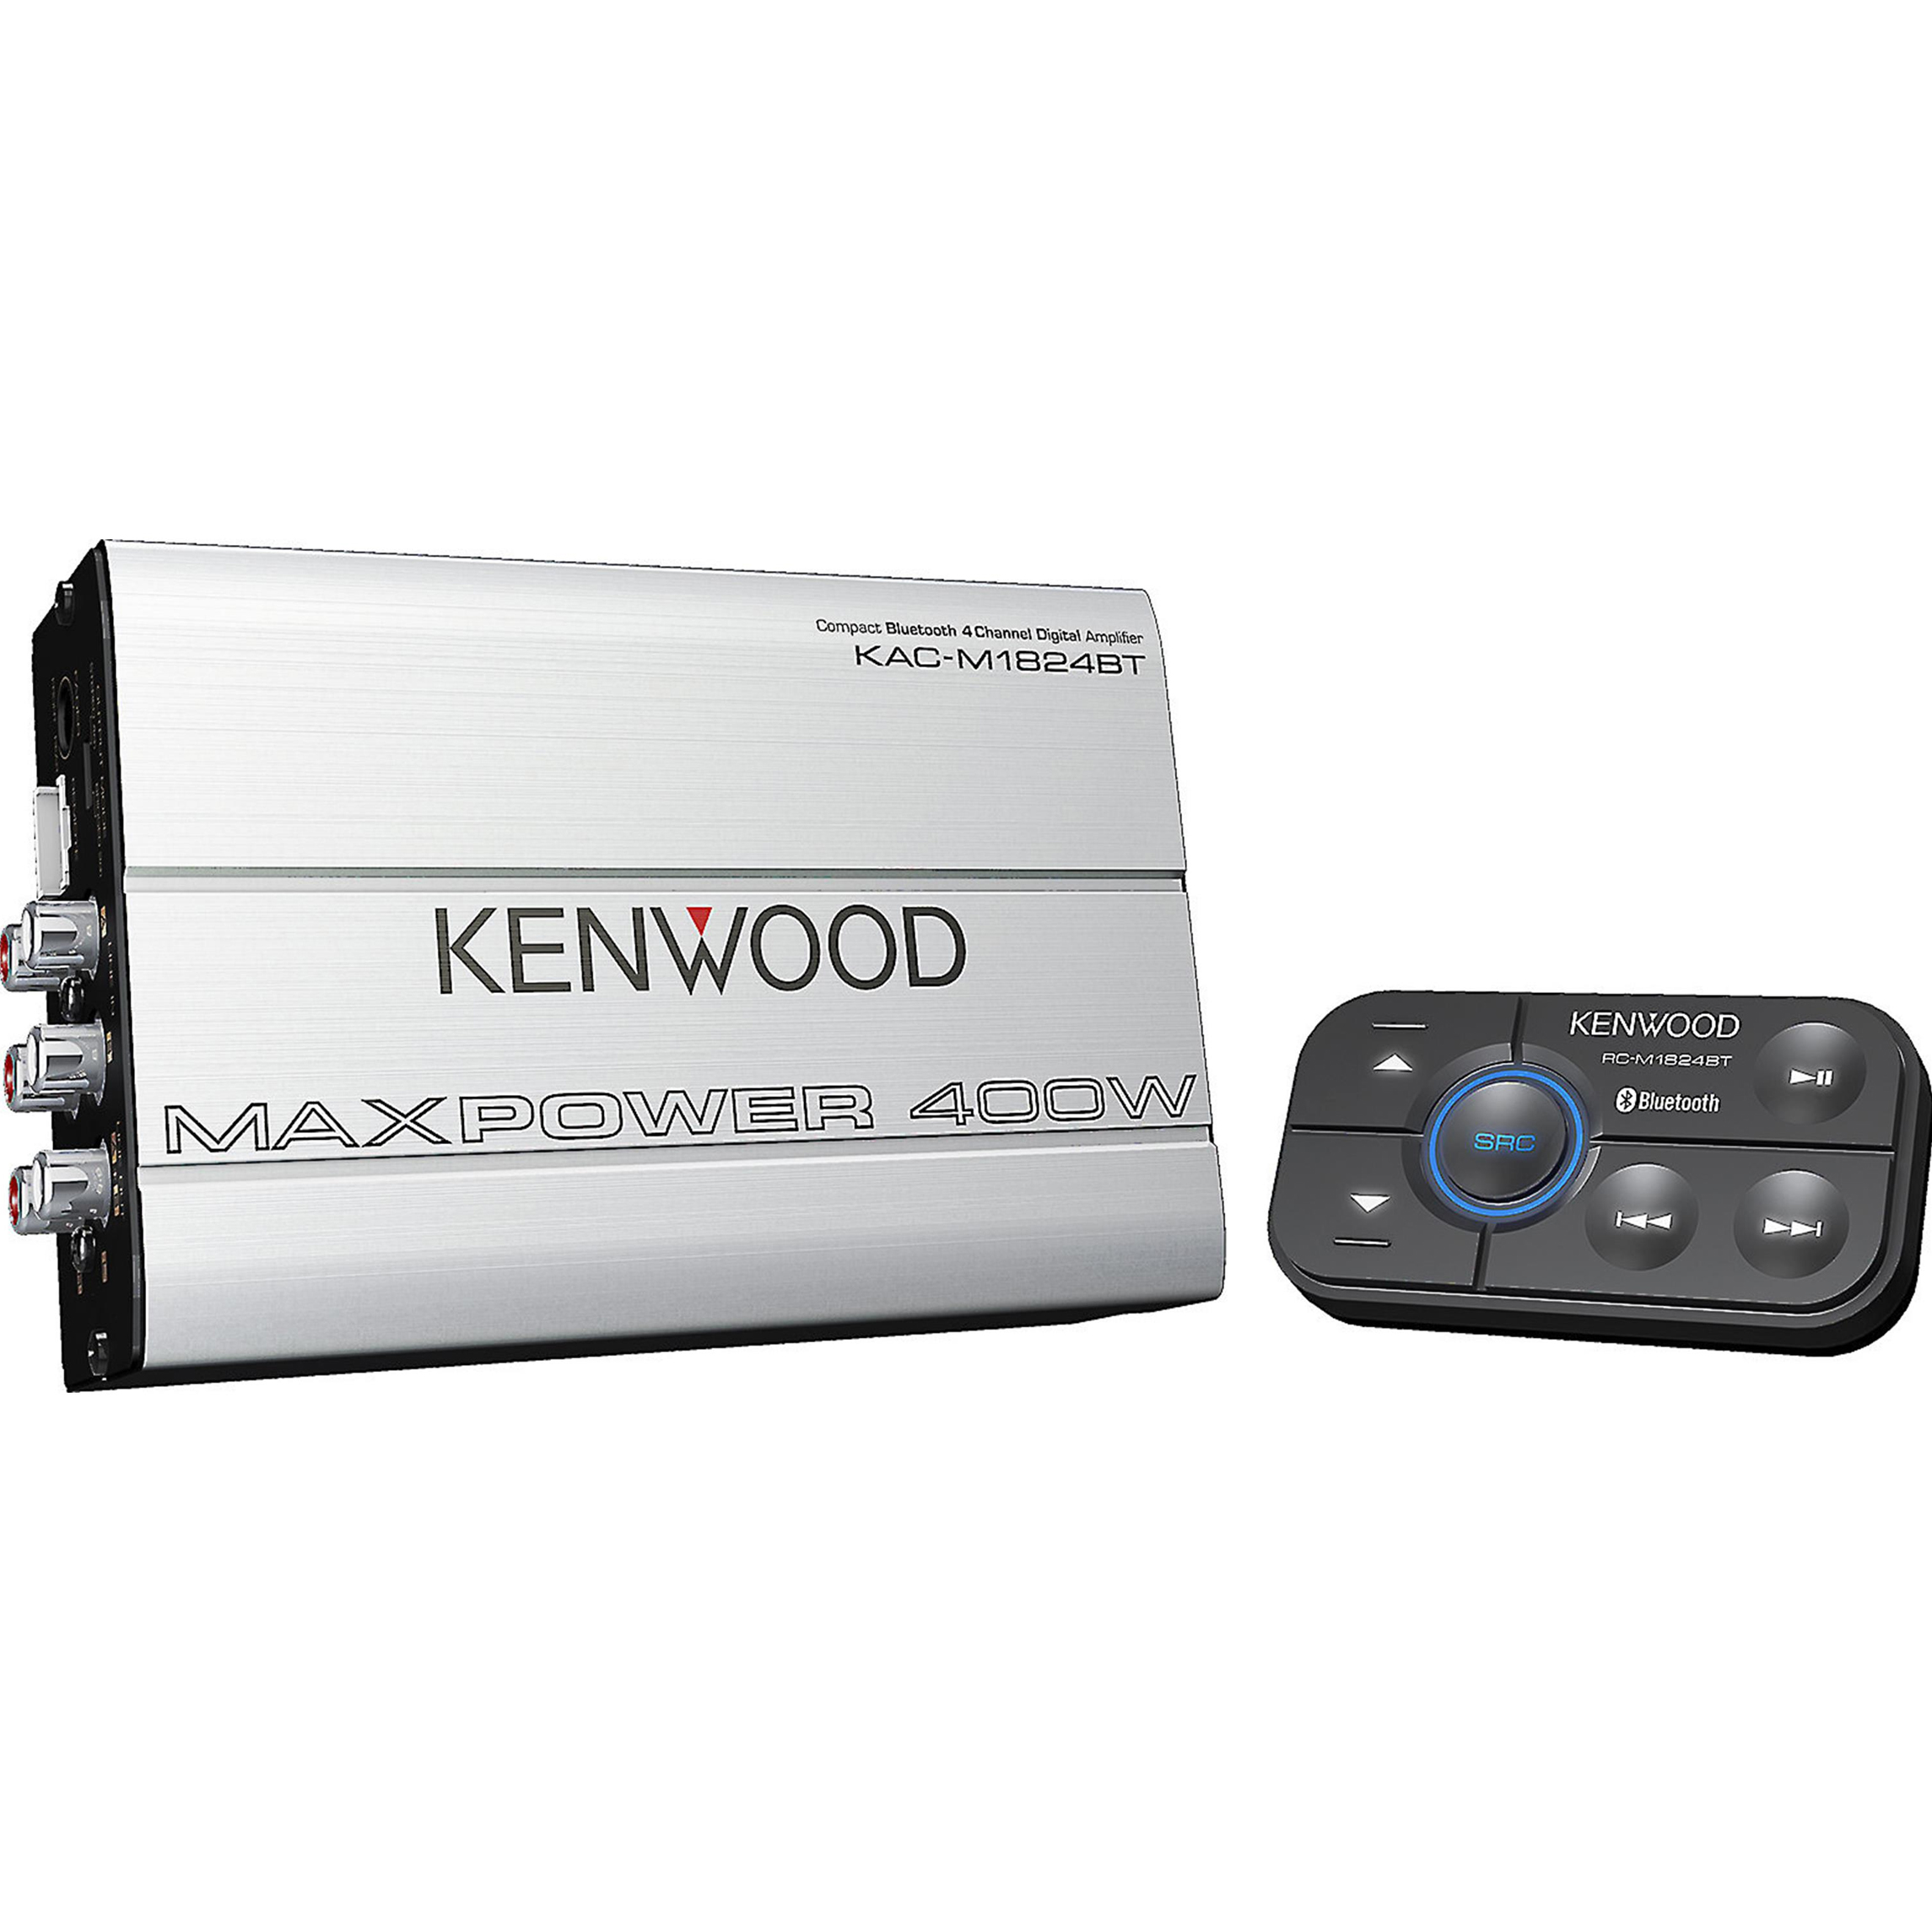 kenwood amplifier kac-m1824bt